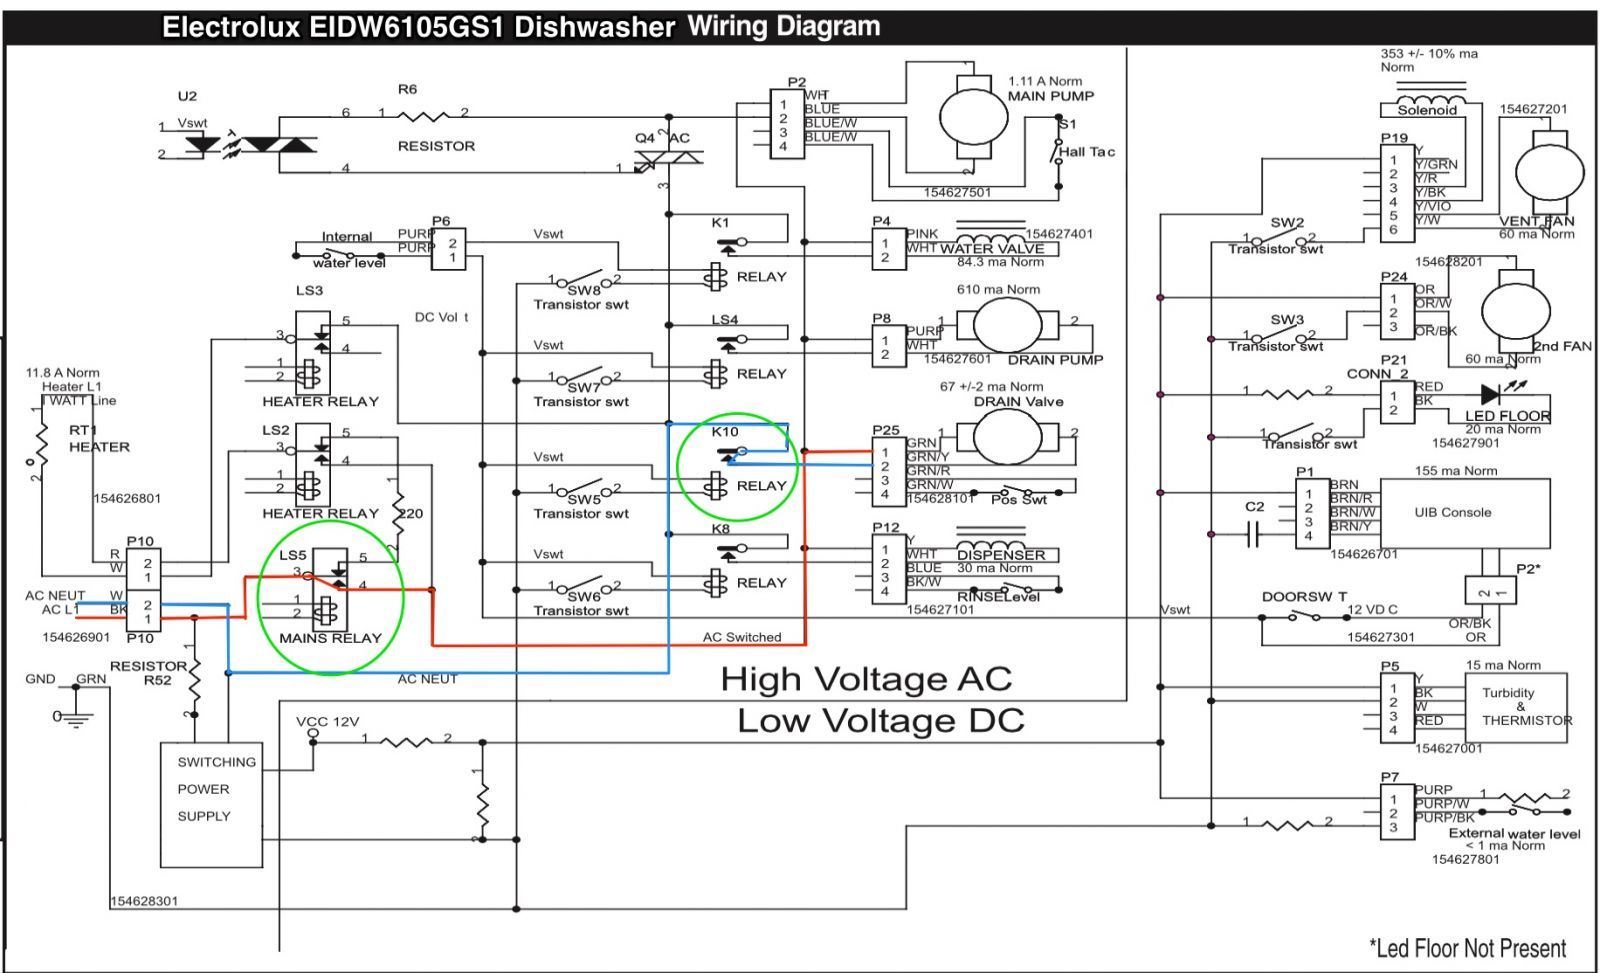 Bosch Dishwasher Wiring Diagram : 31 Wiring Diagram Images